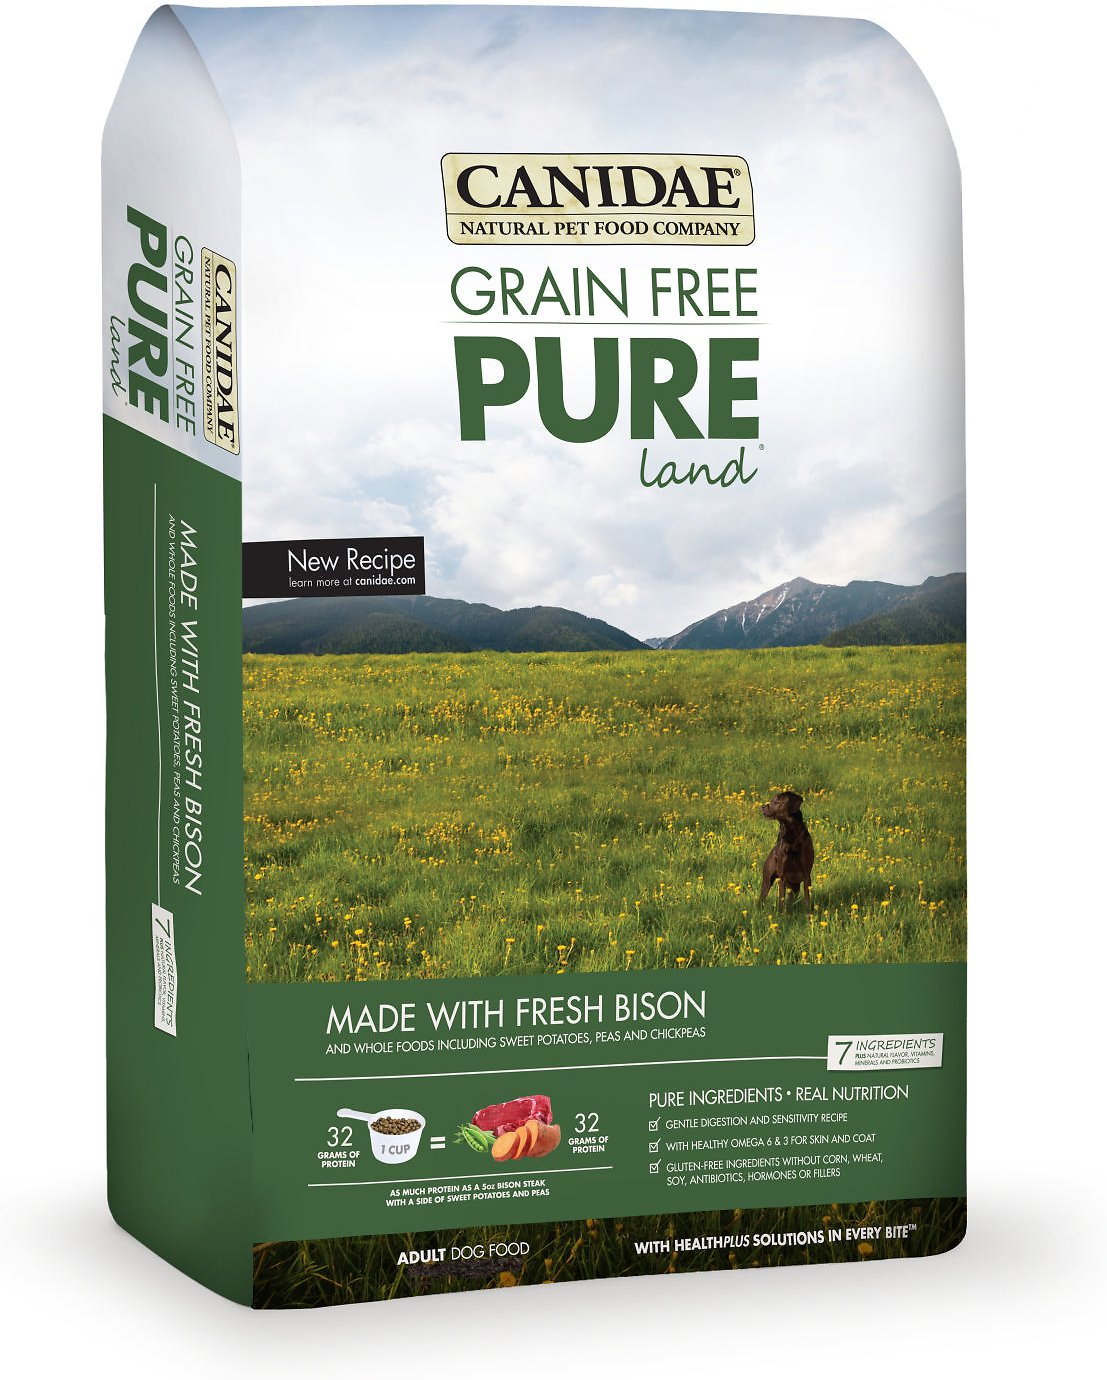 Canidae Dog Food Reviews >> Canidae Grain Free Pure Land Bison Dog Food Review